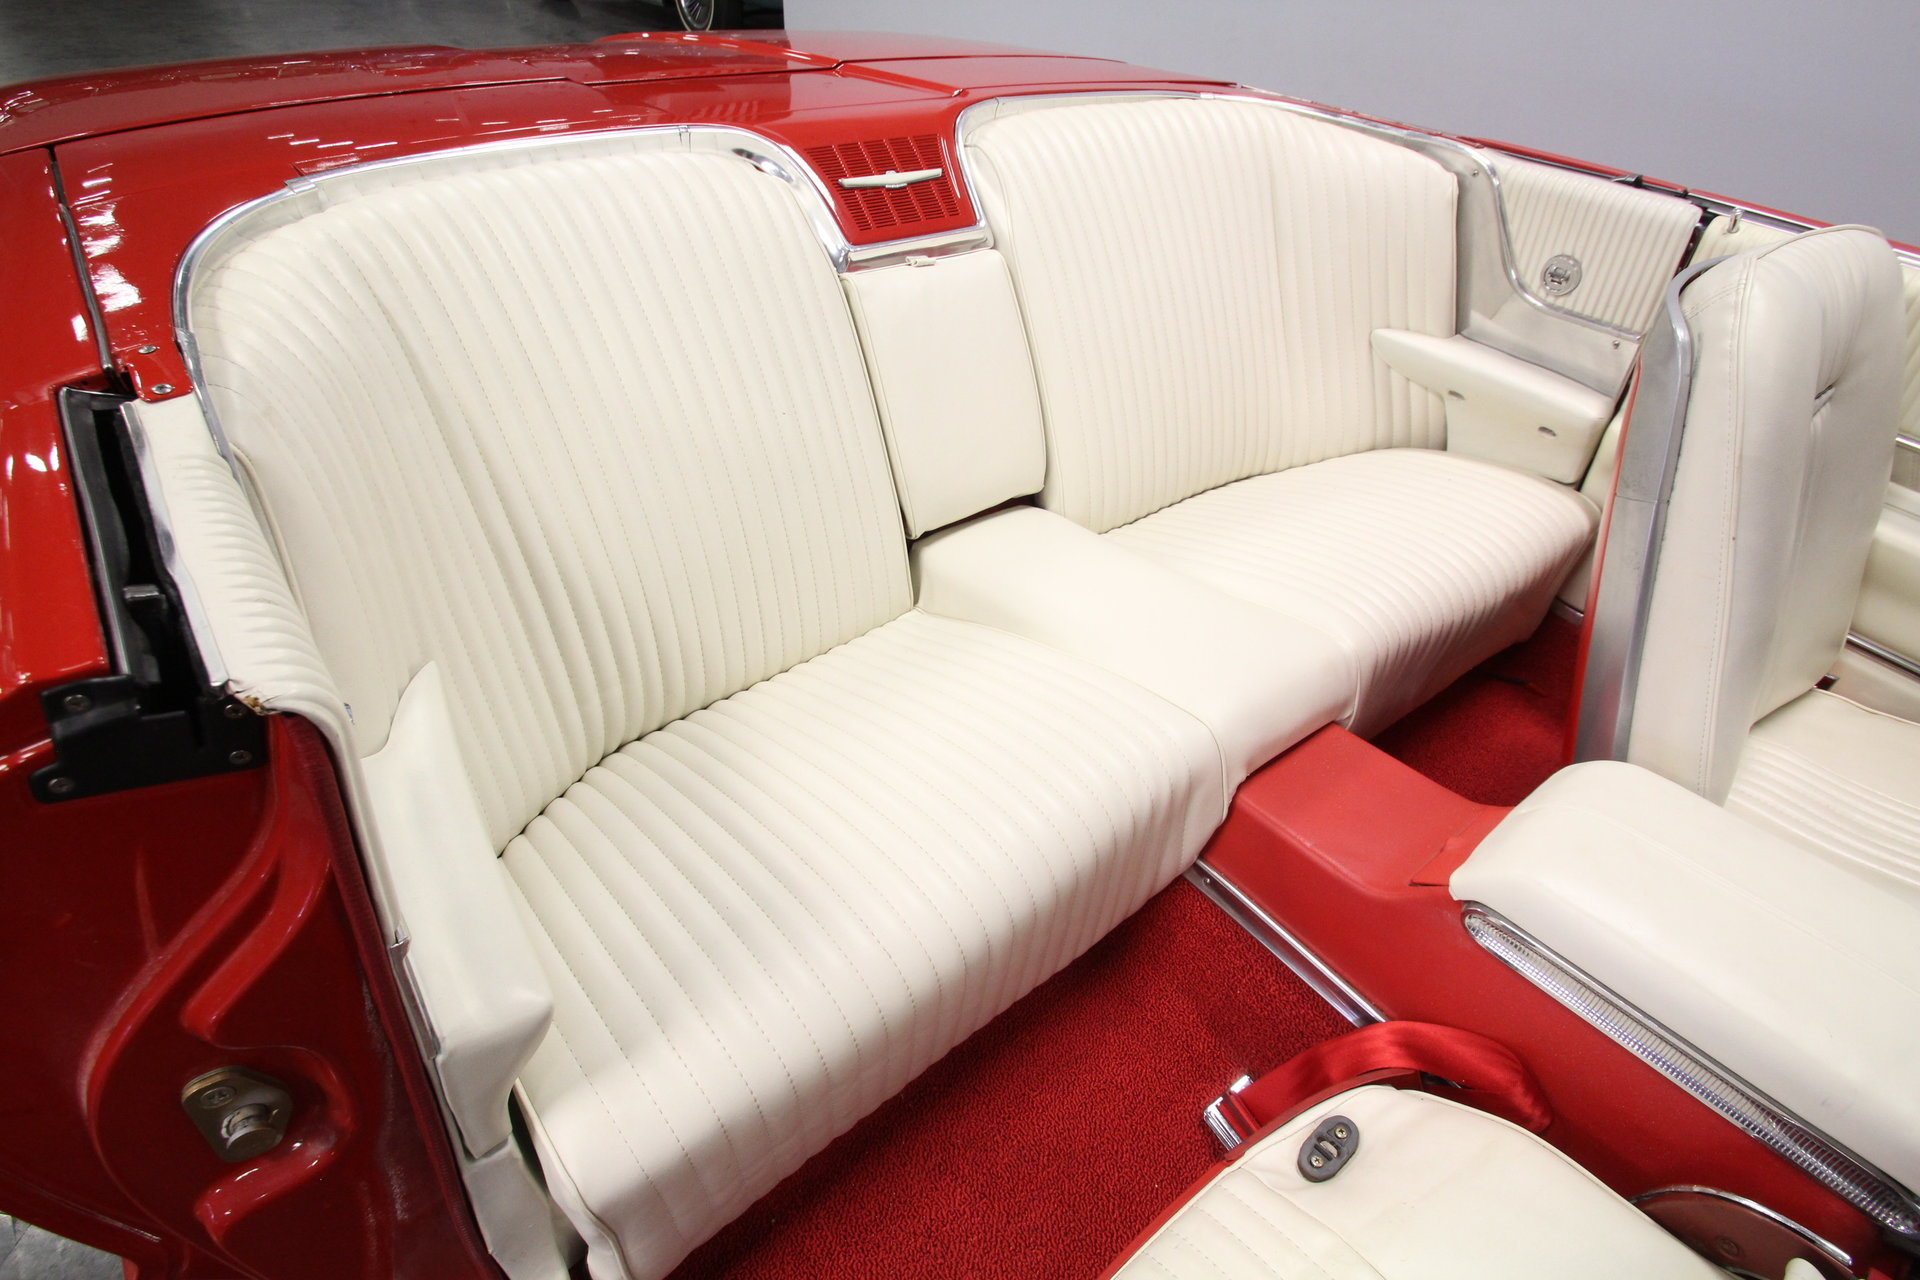 1964 Ford Thunderbird Streetside Classics The Nations Trusted Dash Pad Show More Photos